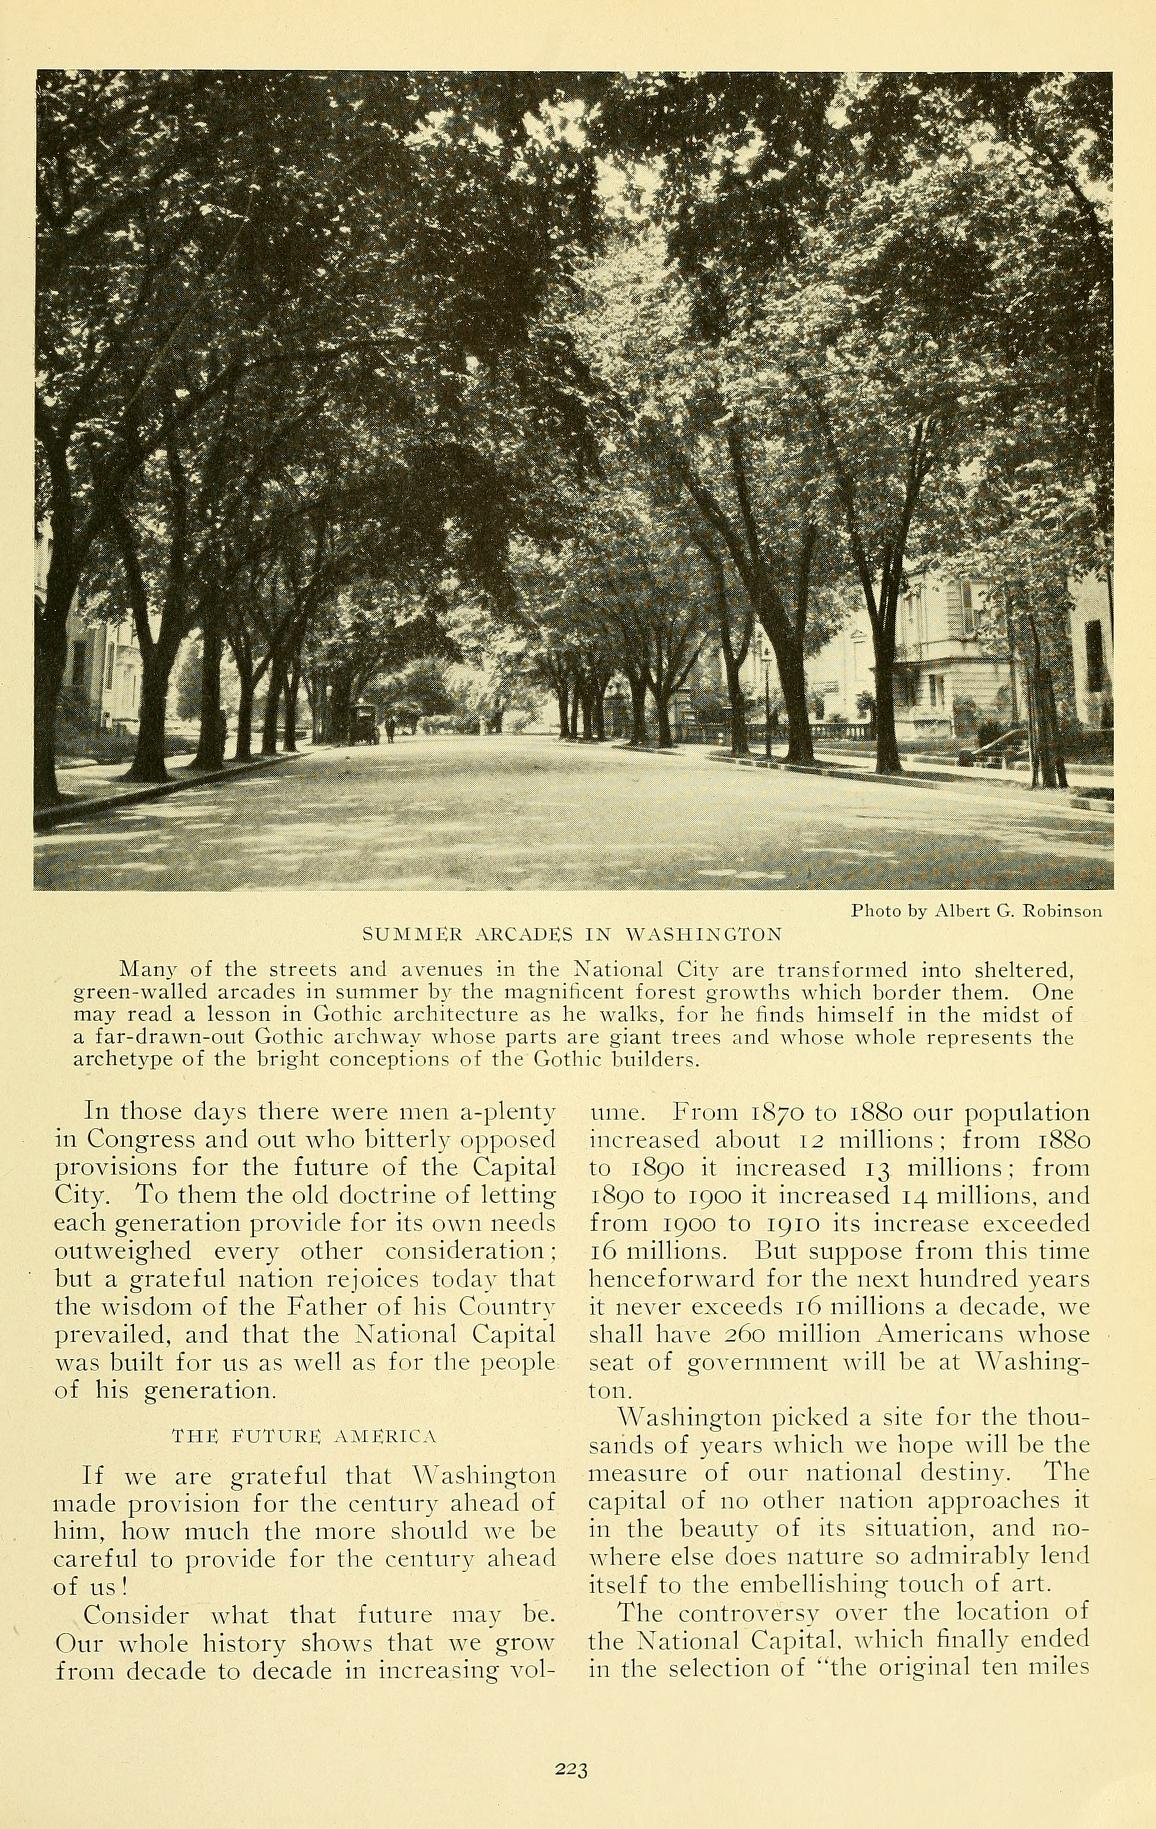 Trees in Washington, DC in 1915